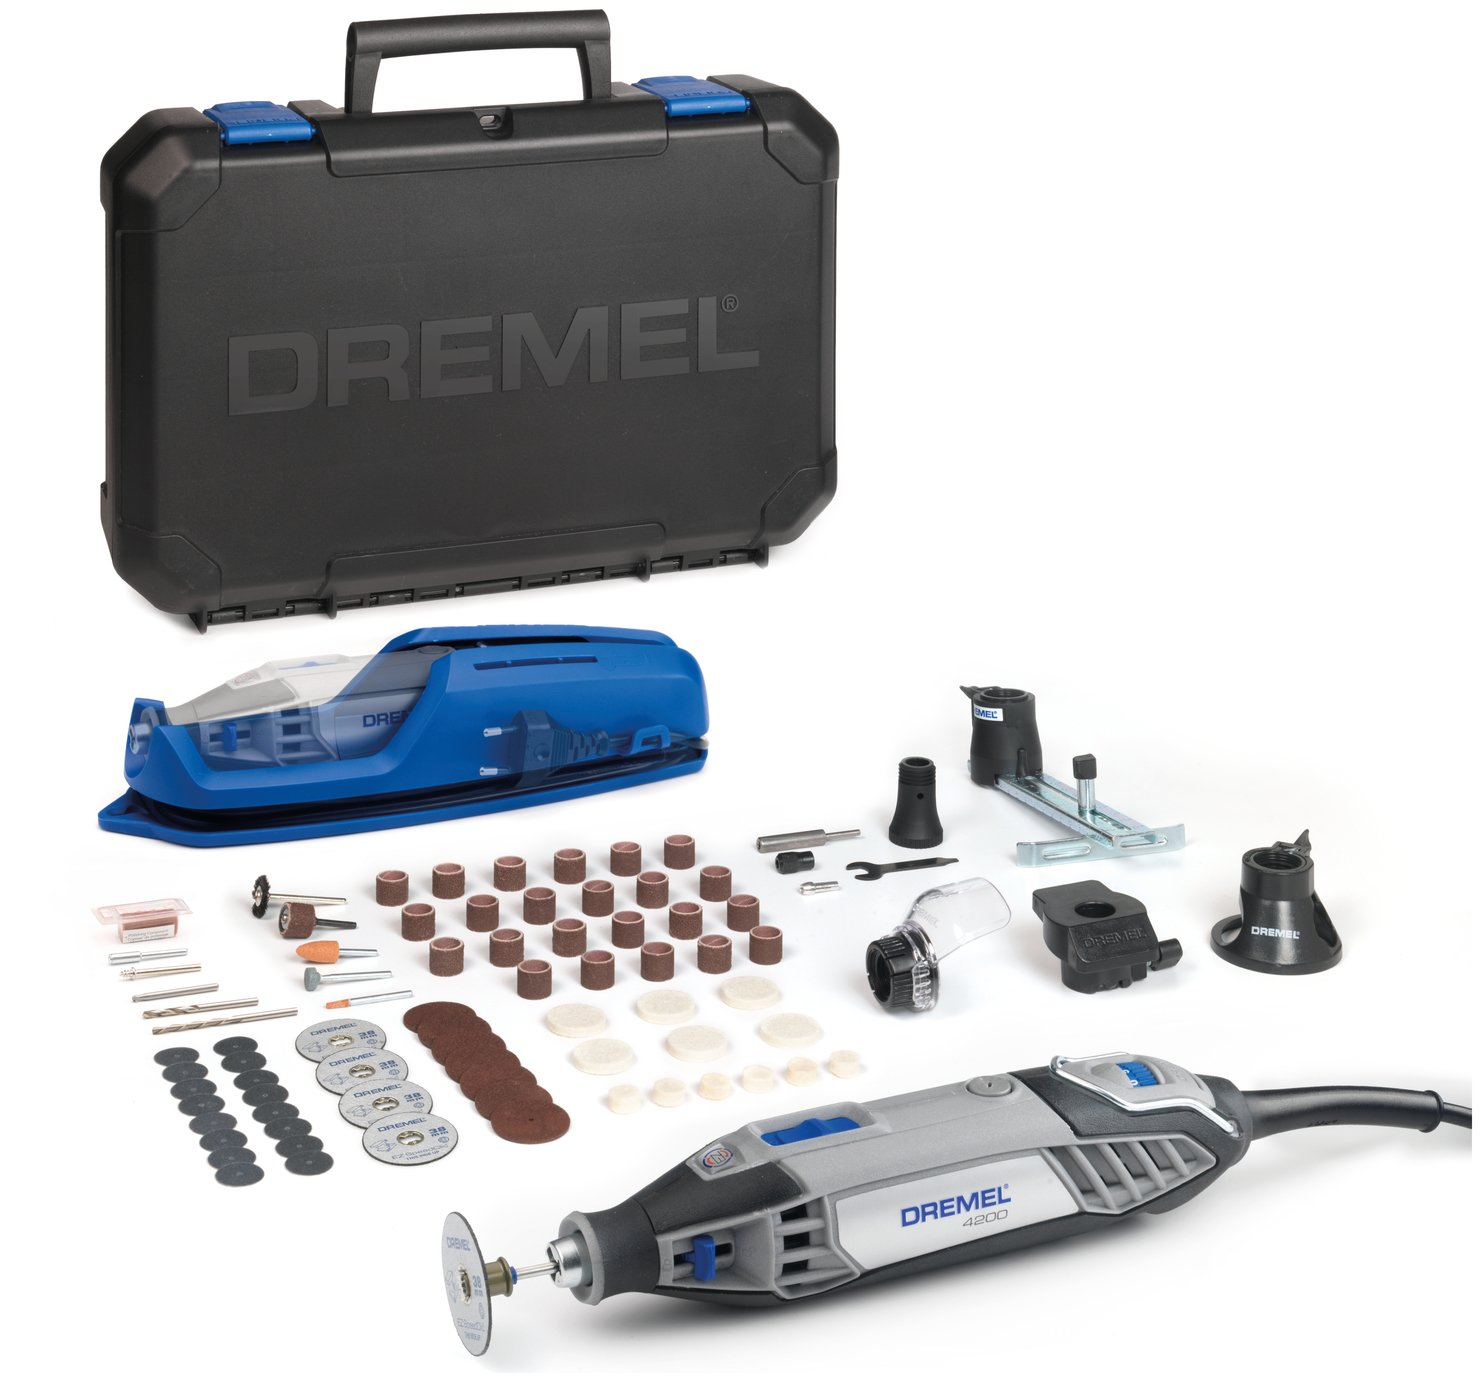 dremel 4200 ez multi tool review. Black Bedroom Furniture Sets. Home Design Ideas